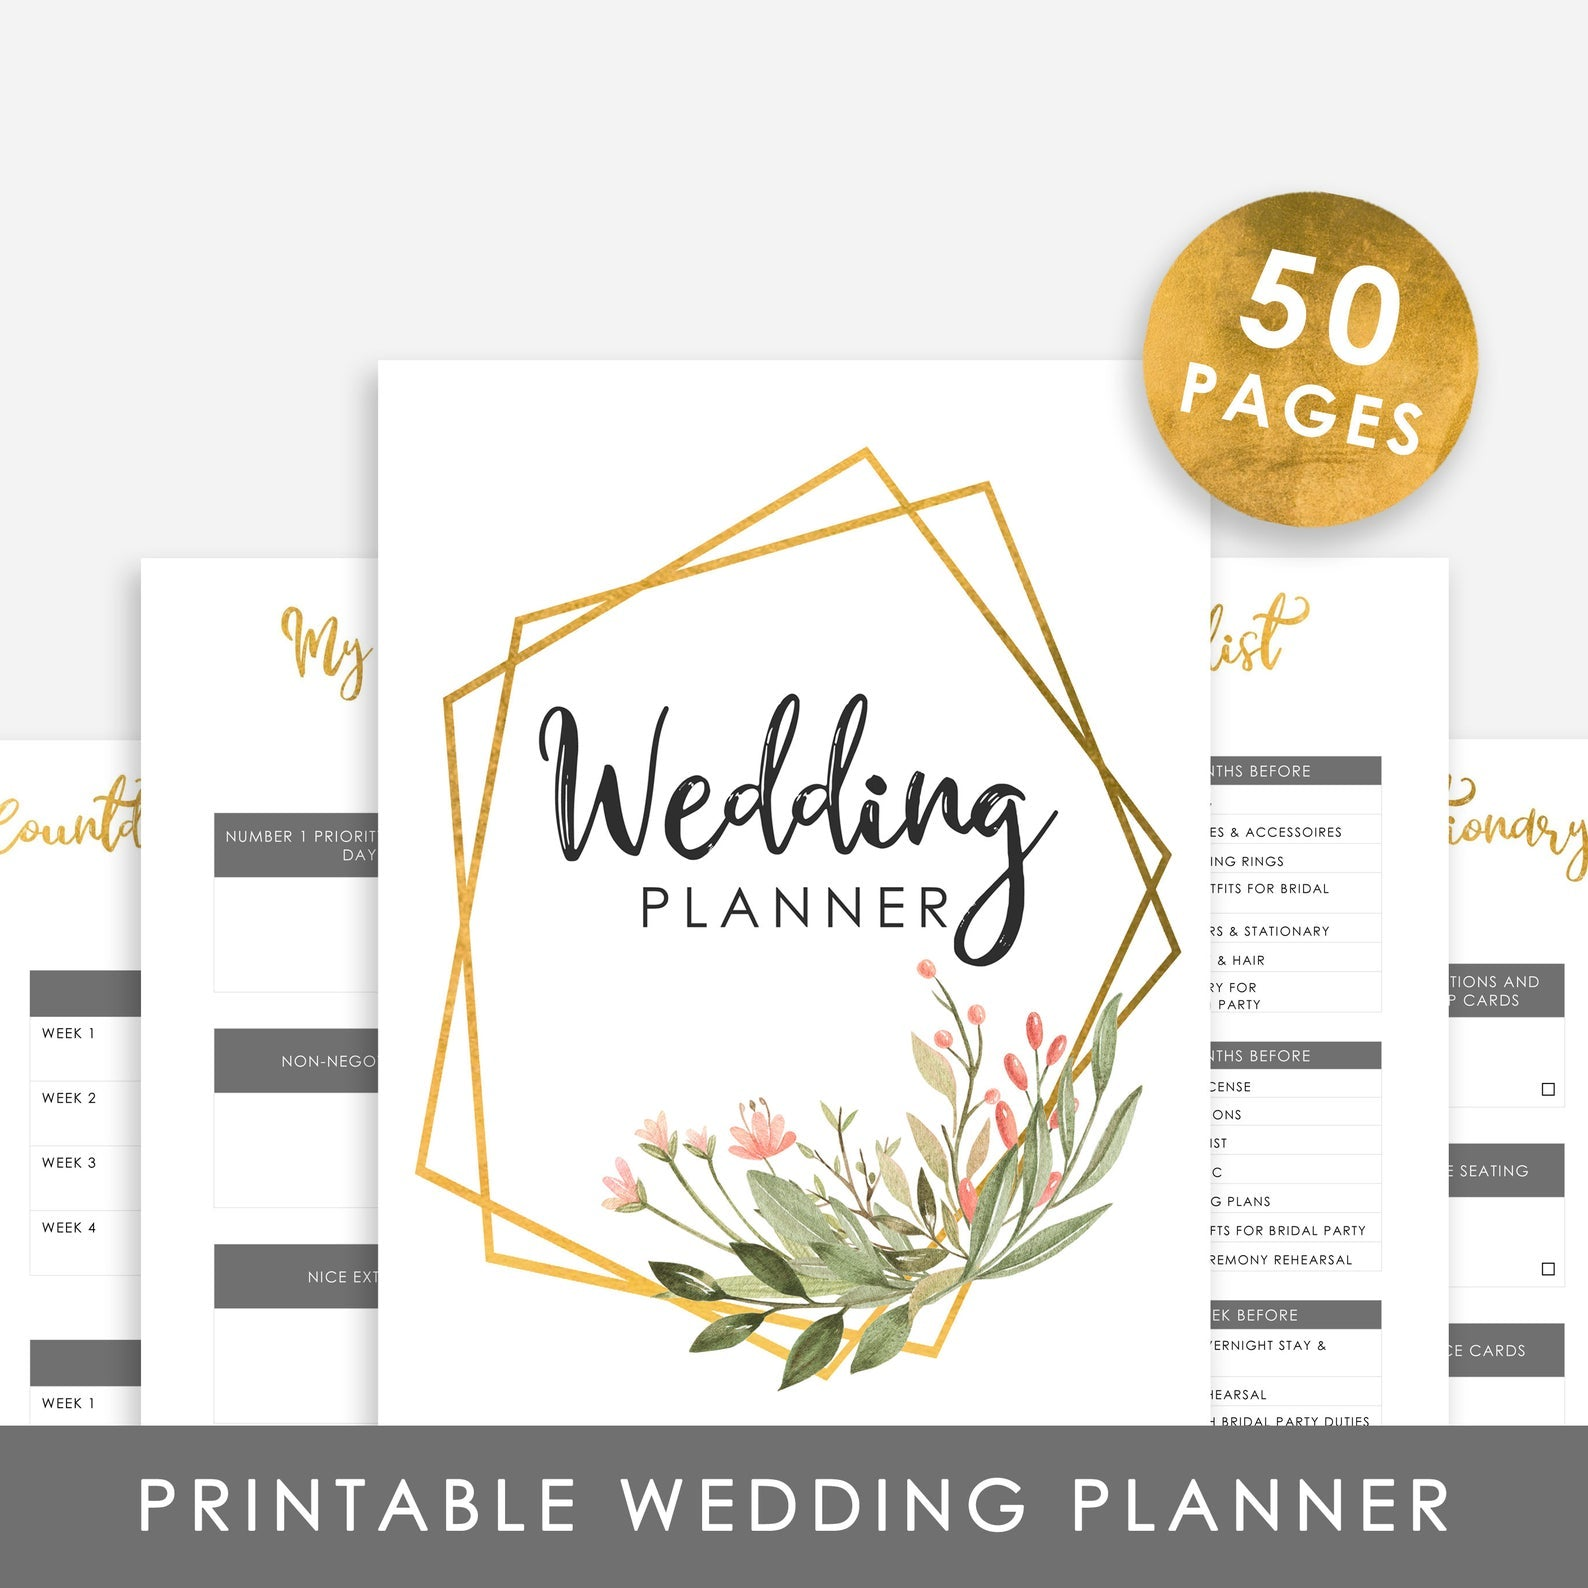 Printable Wedding Planner - Digital Wedding Planner - Boho Wedding Planner